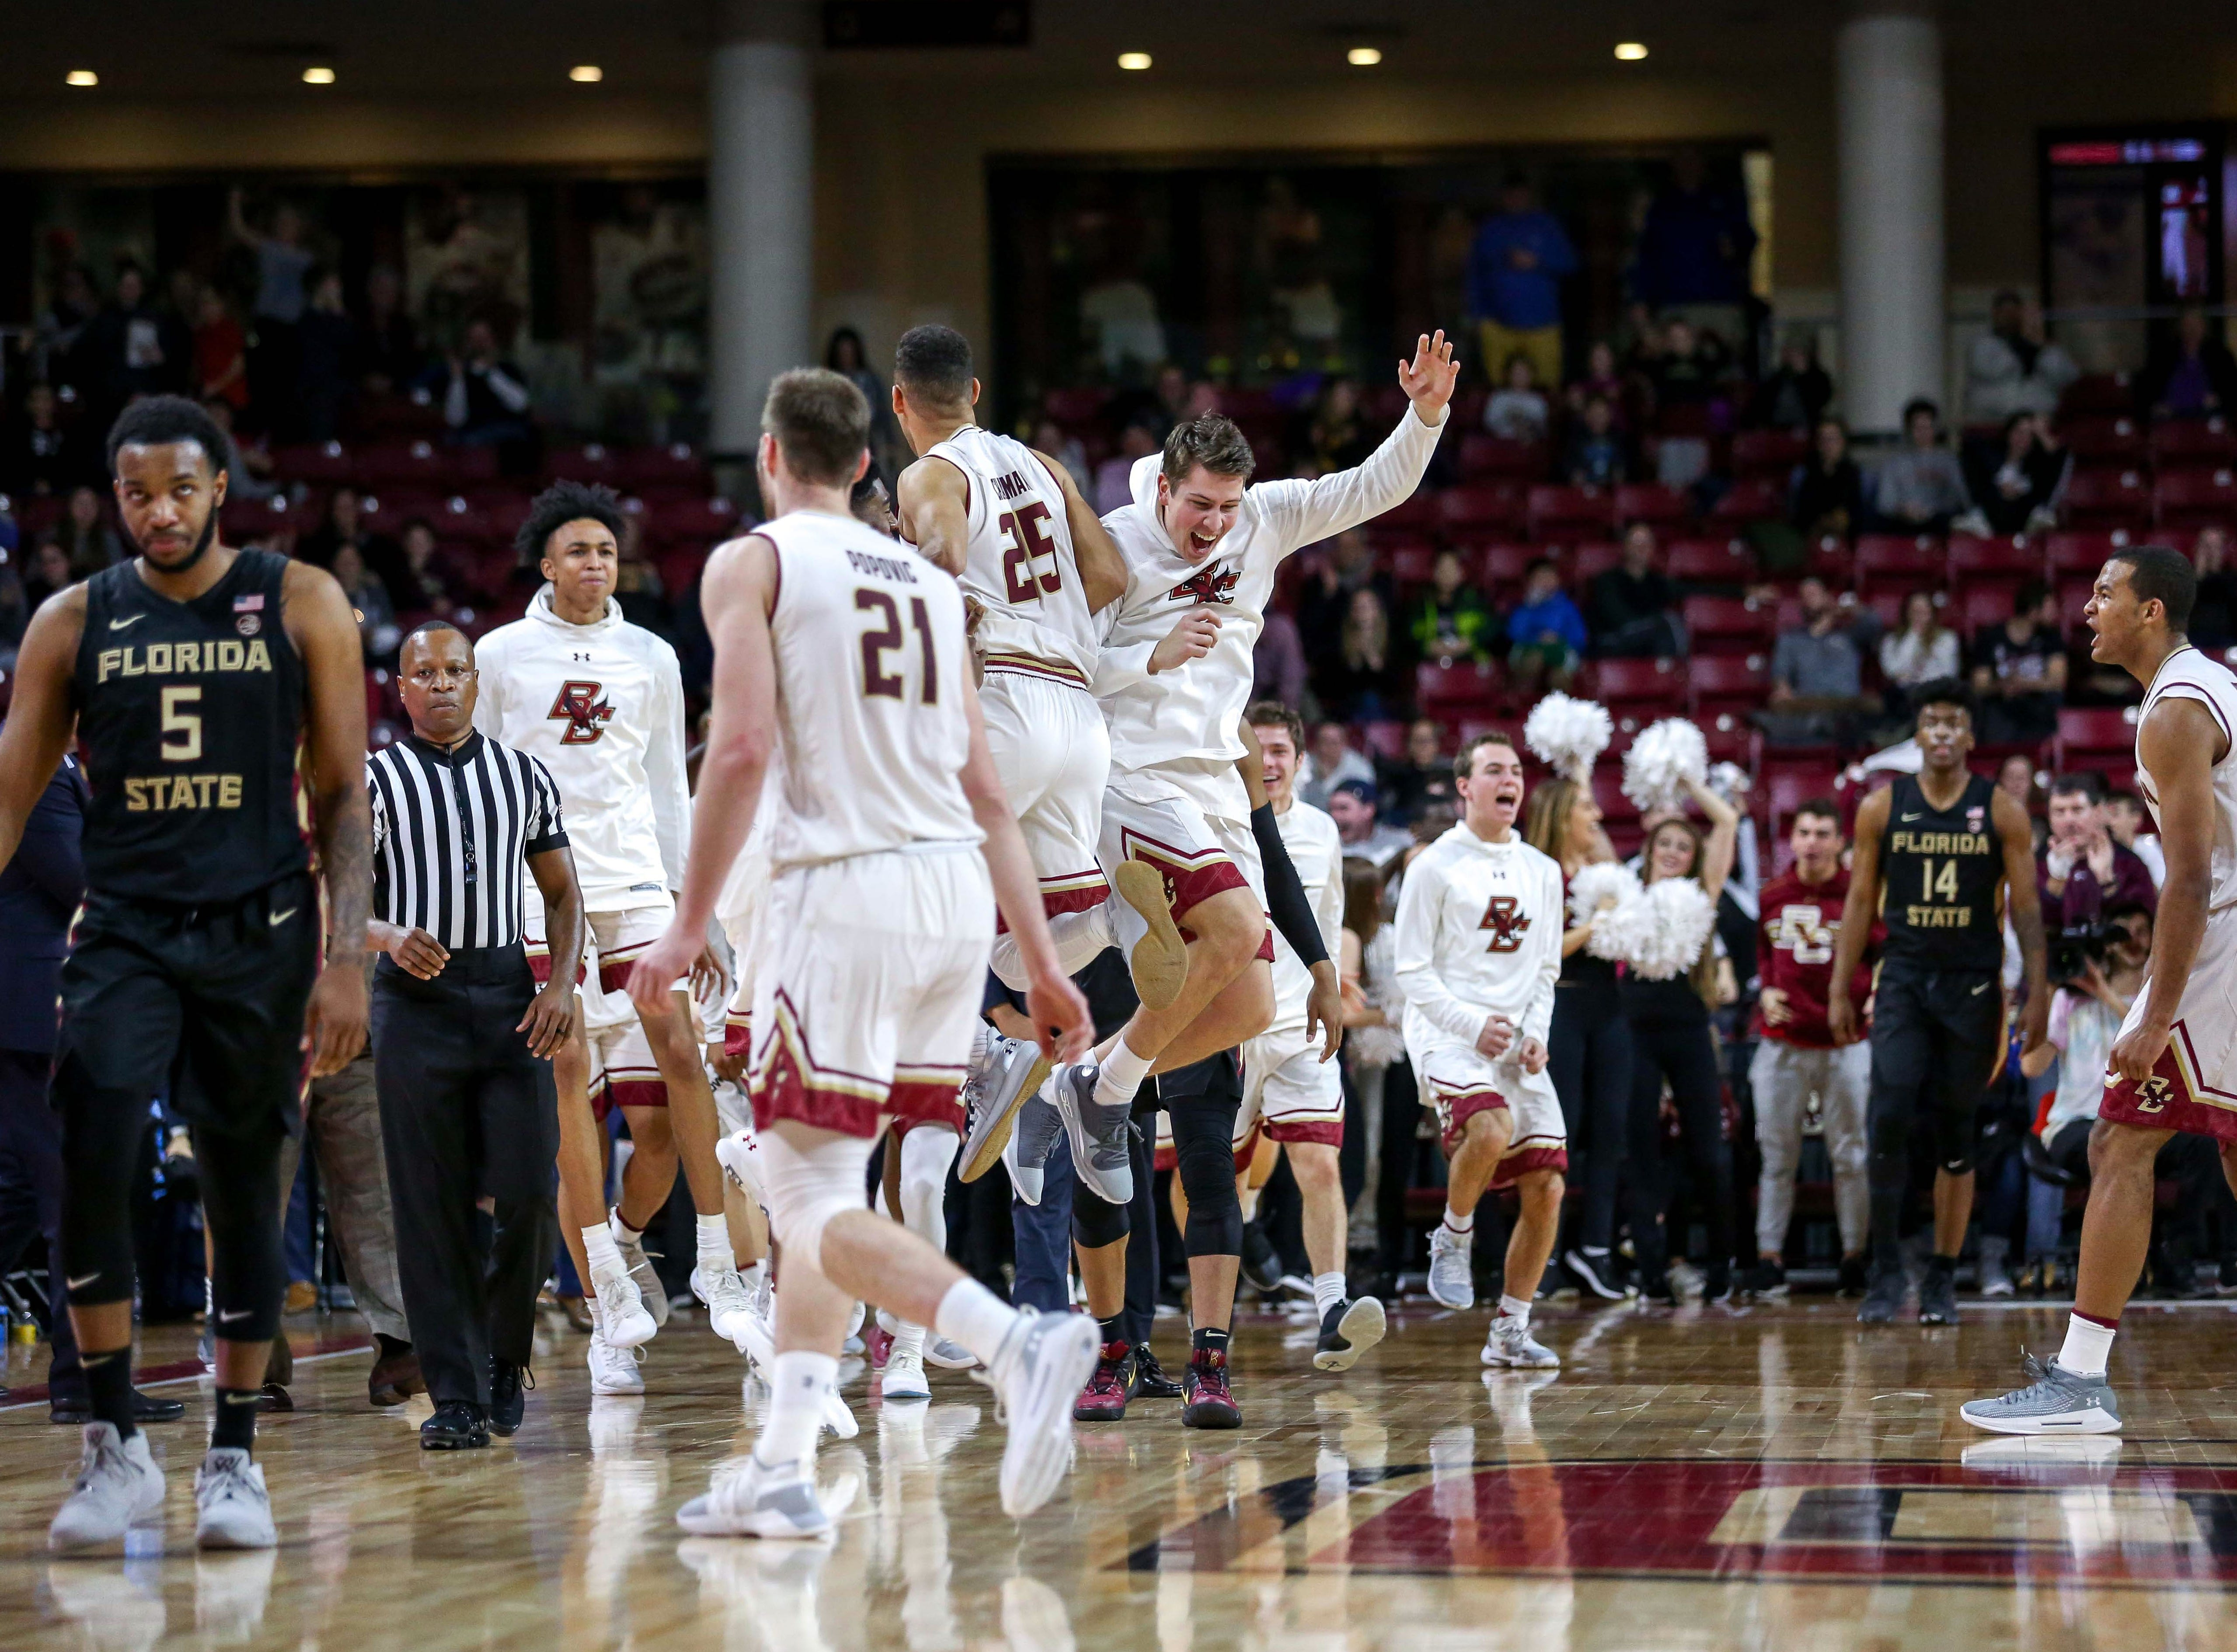 Jan 20, 2019; Chestnut Hill, MA, USA; Boston College Eagles guard Jordan Chatman (25) reacts with the Boston College Eagles bench after hitting a three pointer against the Florida State Seminoles during the second half at Conte Forum. Mandatory Credit: Paul Rutherford-USA TODAY Sports